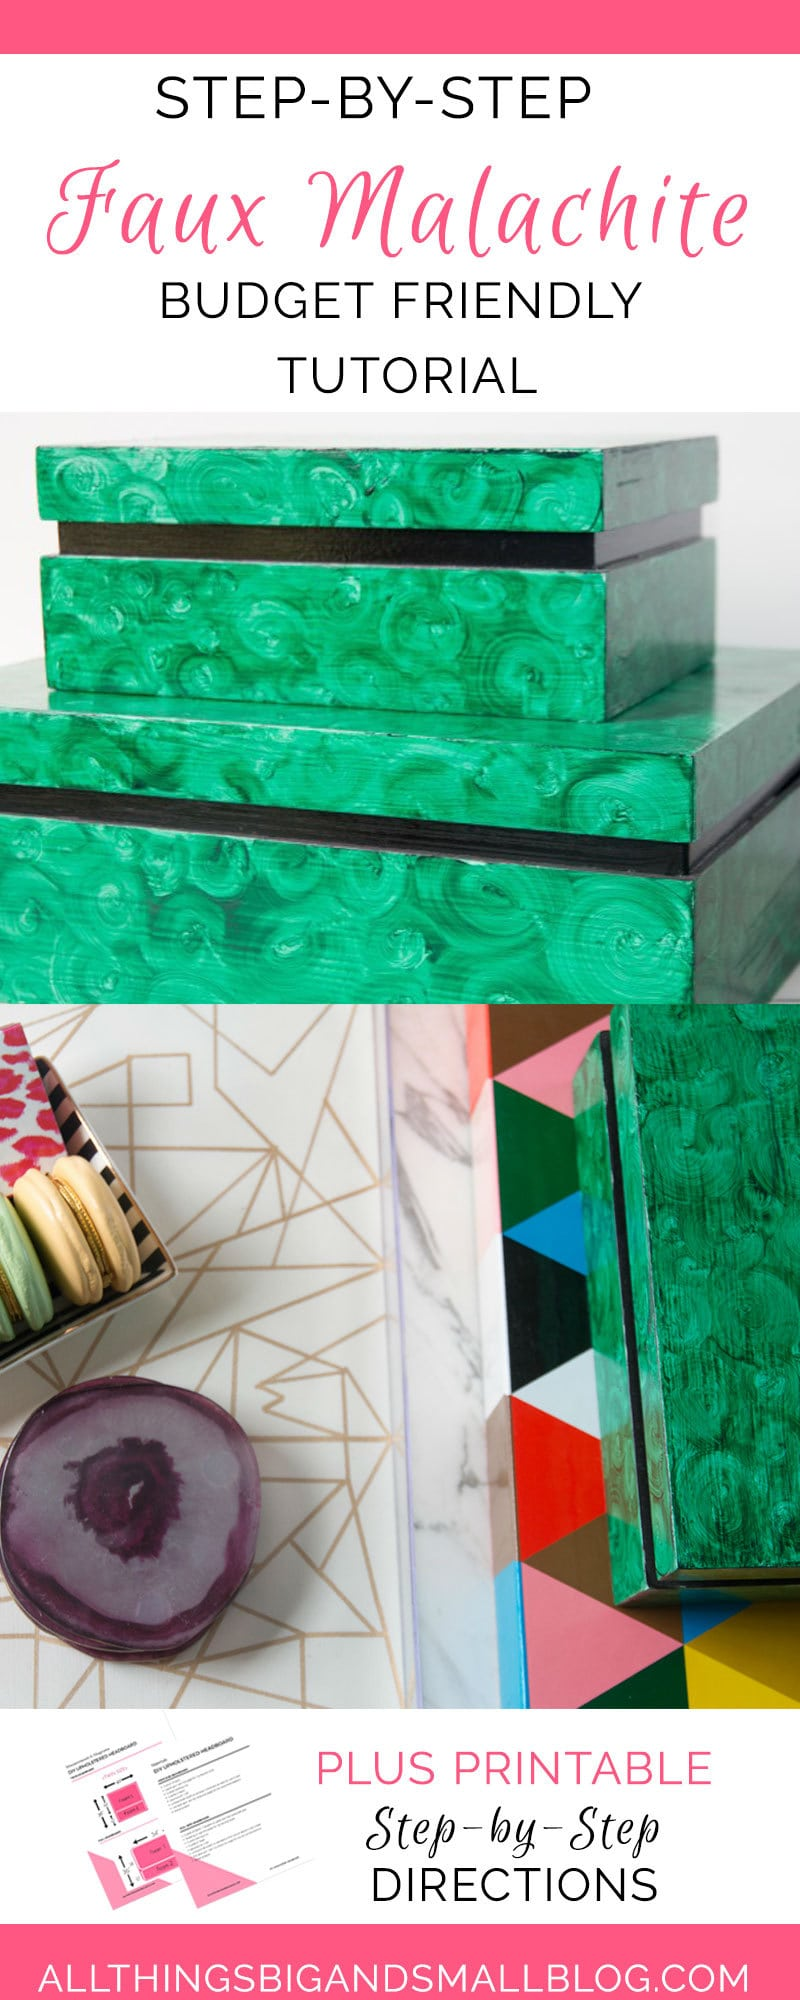 Faux Malachite | DIY faux malachite box | DIY home decor by ALL THINGS BIG AND SMALL